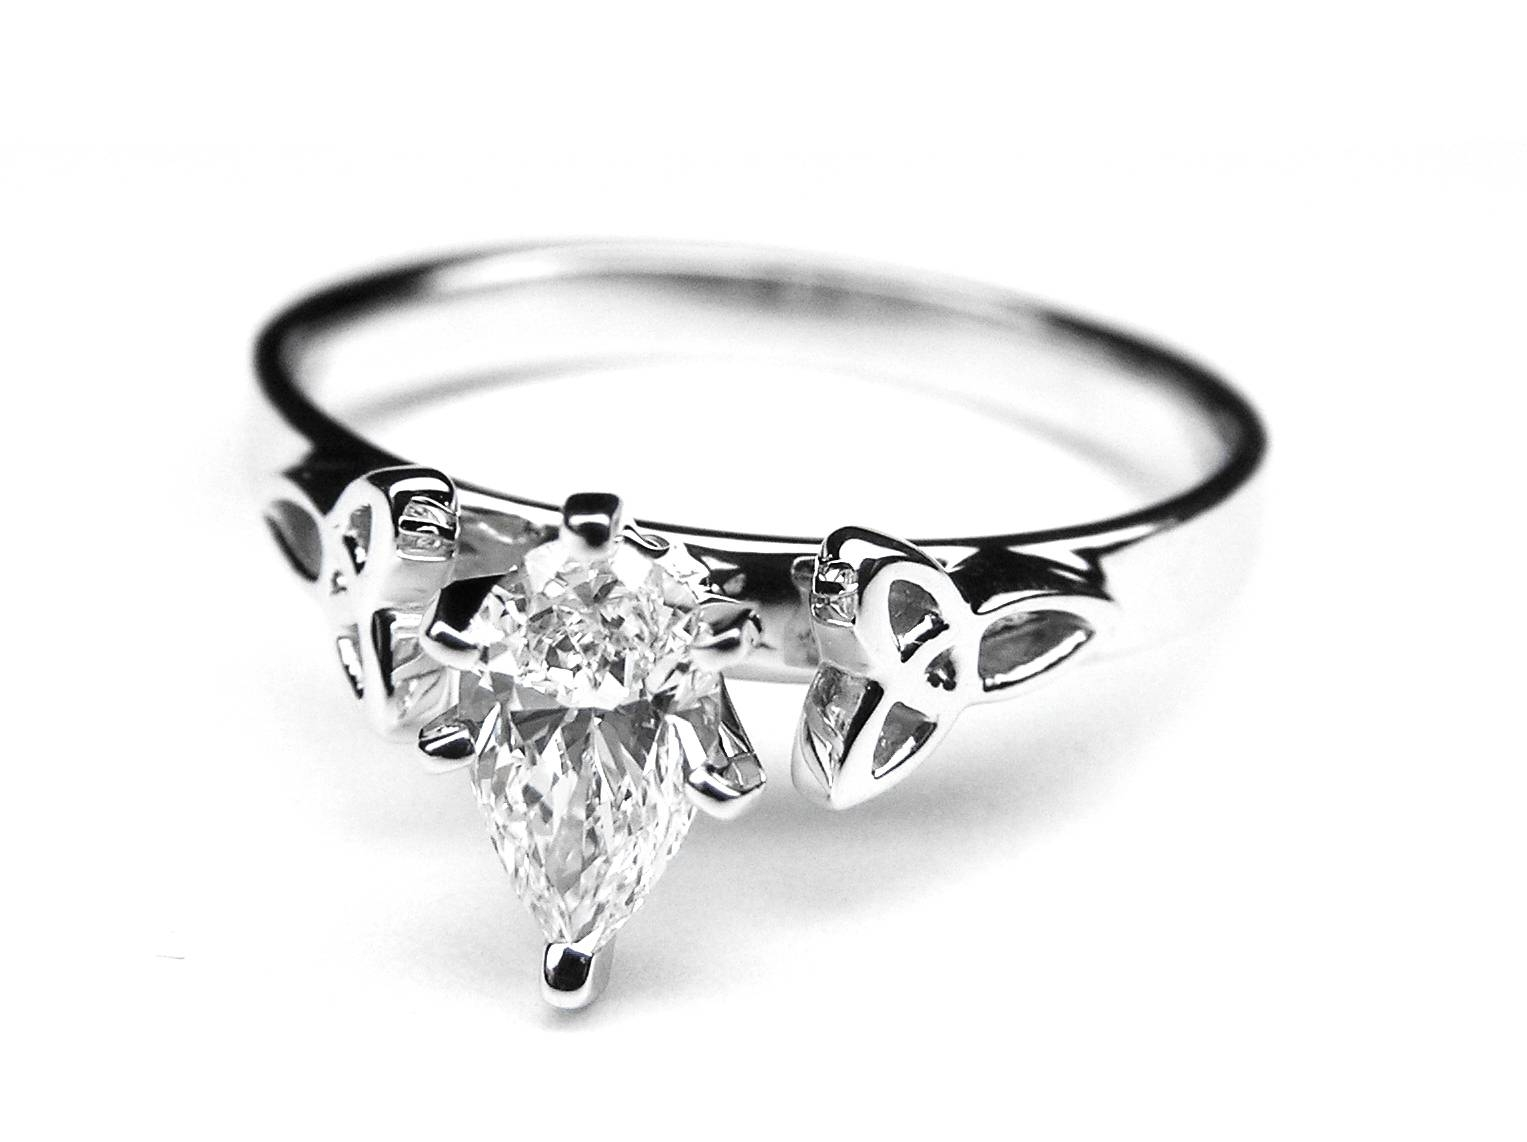 Pear – Engagement Rings From Mdc Diamonds Nyc Inside Celtic Engagement Ring Settings (View 14 of 15)